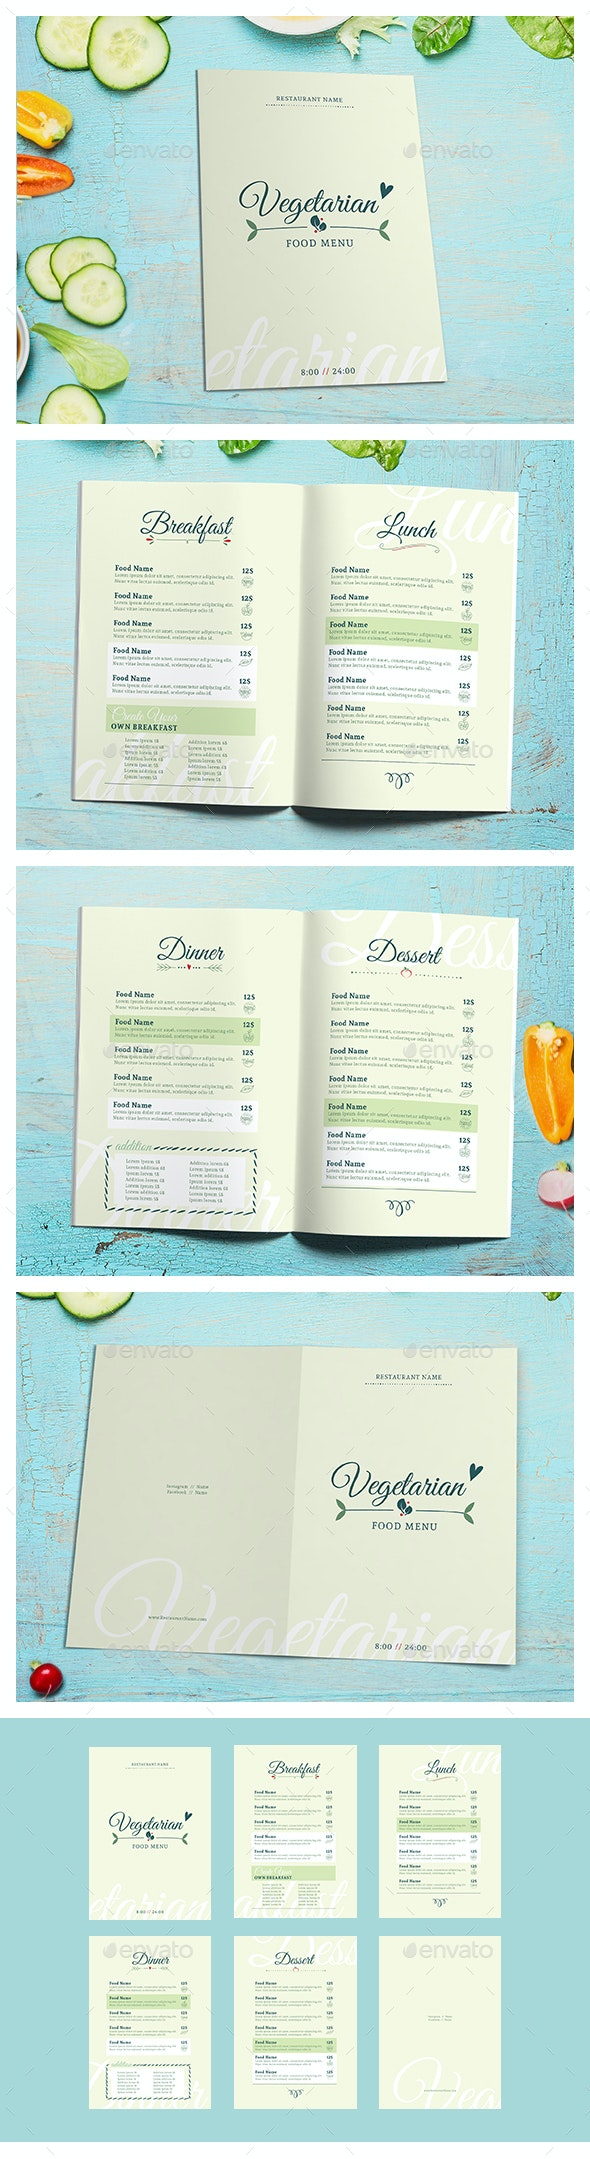 Vegetarian Food menu II - Food Menus Print Templates